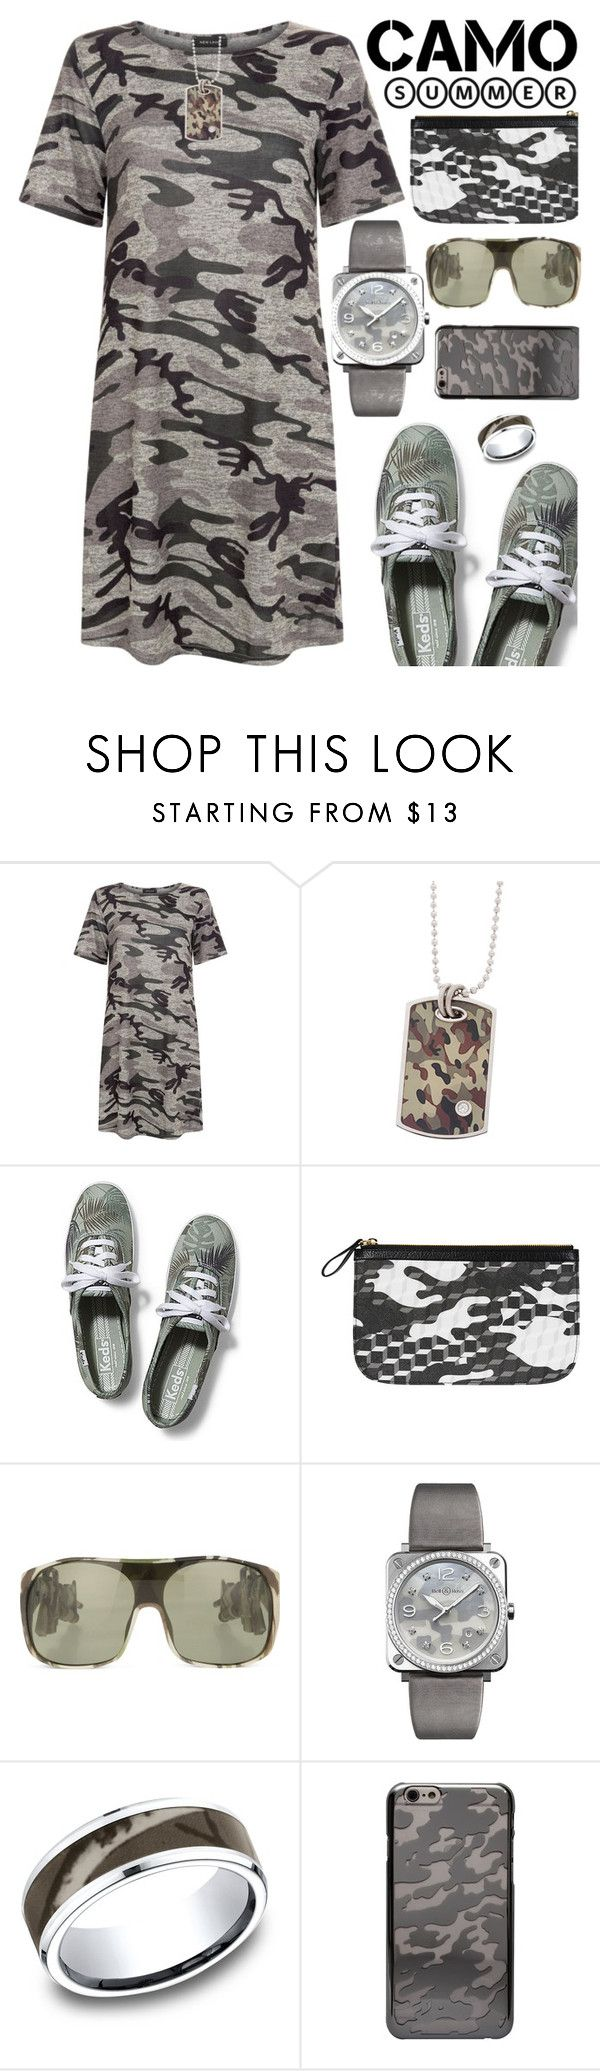 """Camo for Summer"" by rasa-j ❤ liked on Polyvore featuring New Look, Keds, Pierre Hardy, Jeremy Scott, Bell & Ross and CYLO"